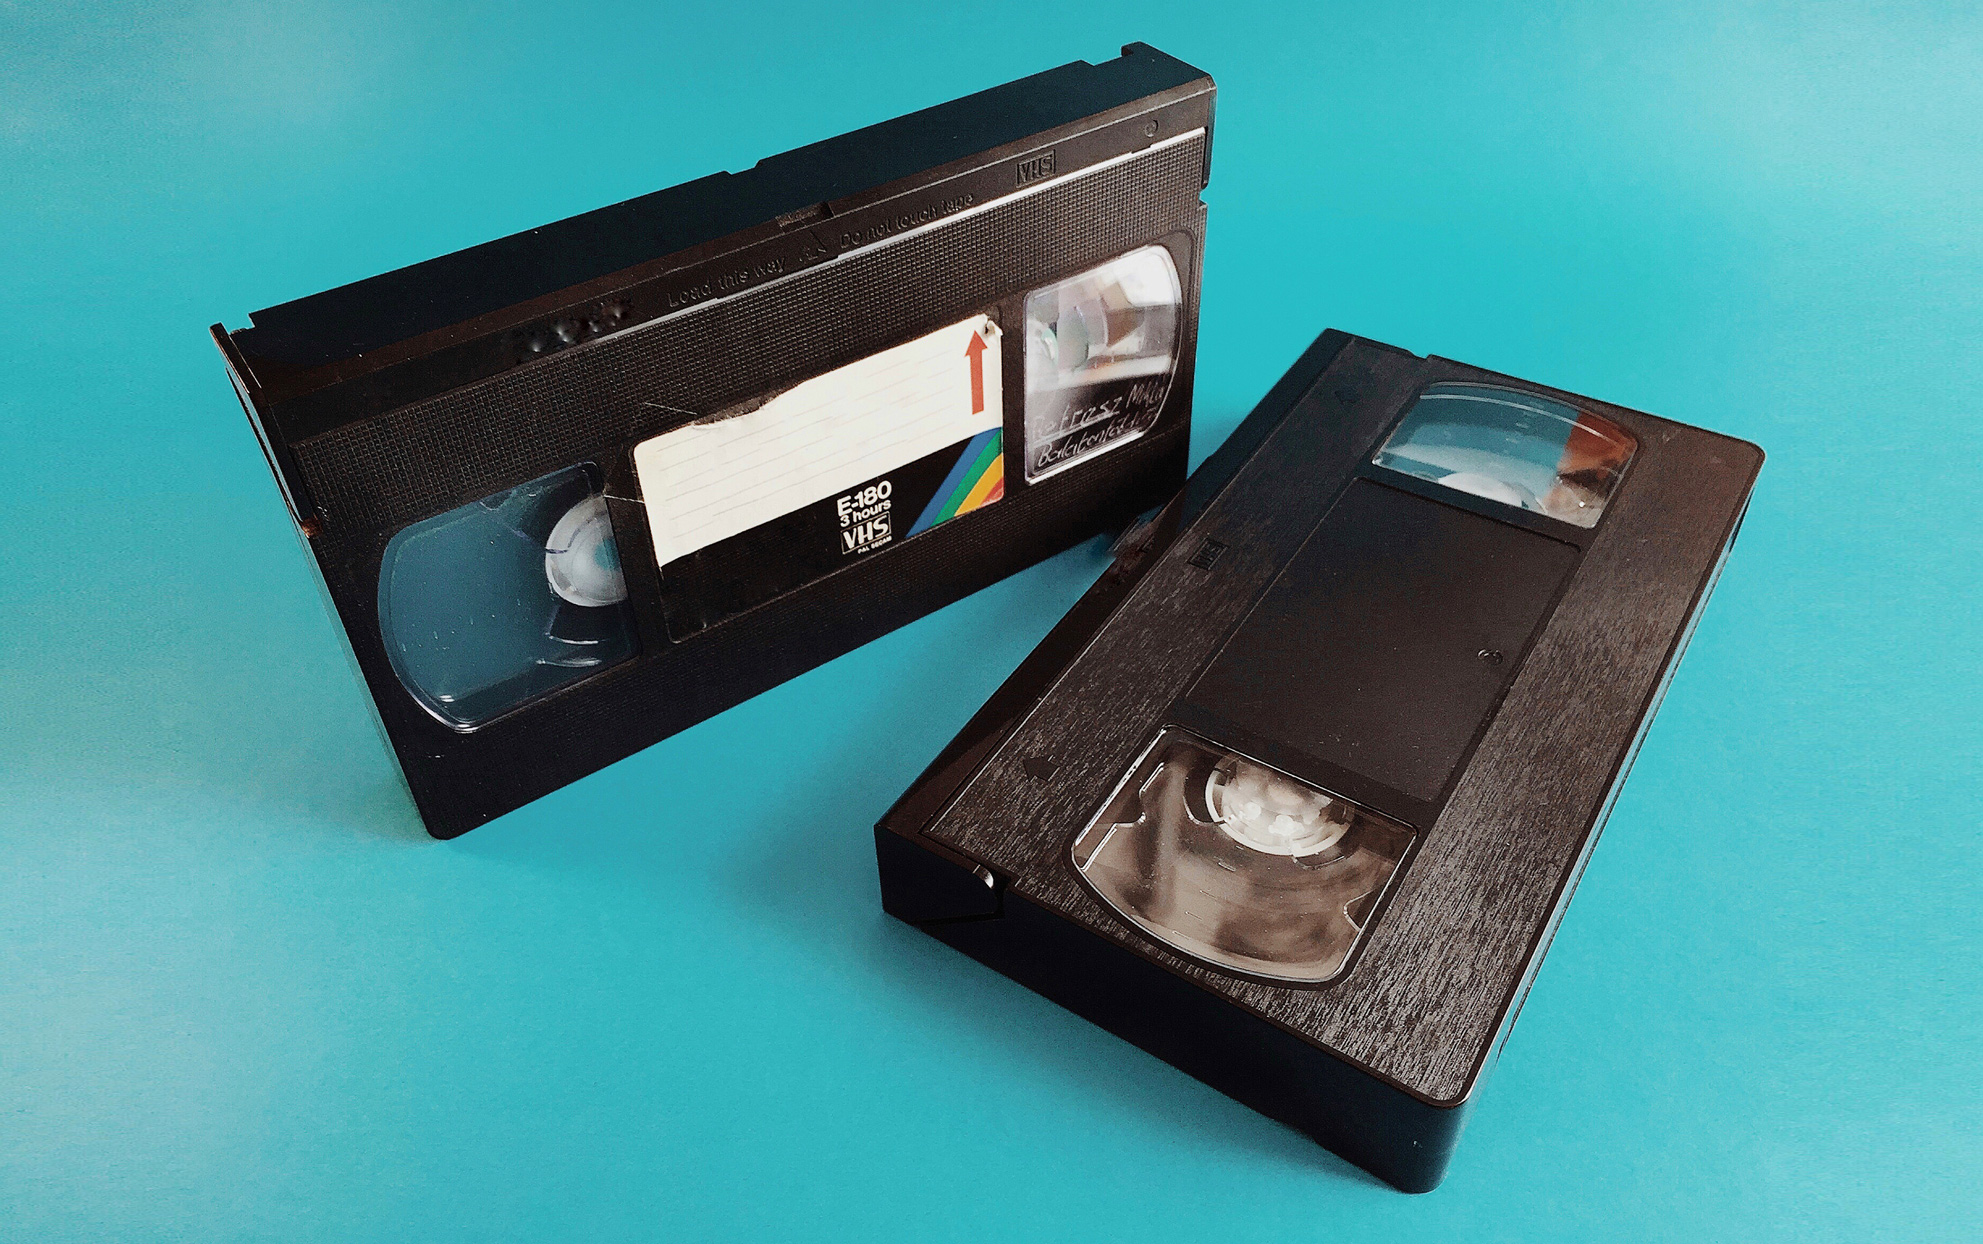 Two VHS tapes on a teal background